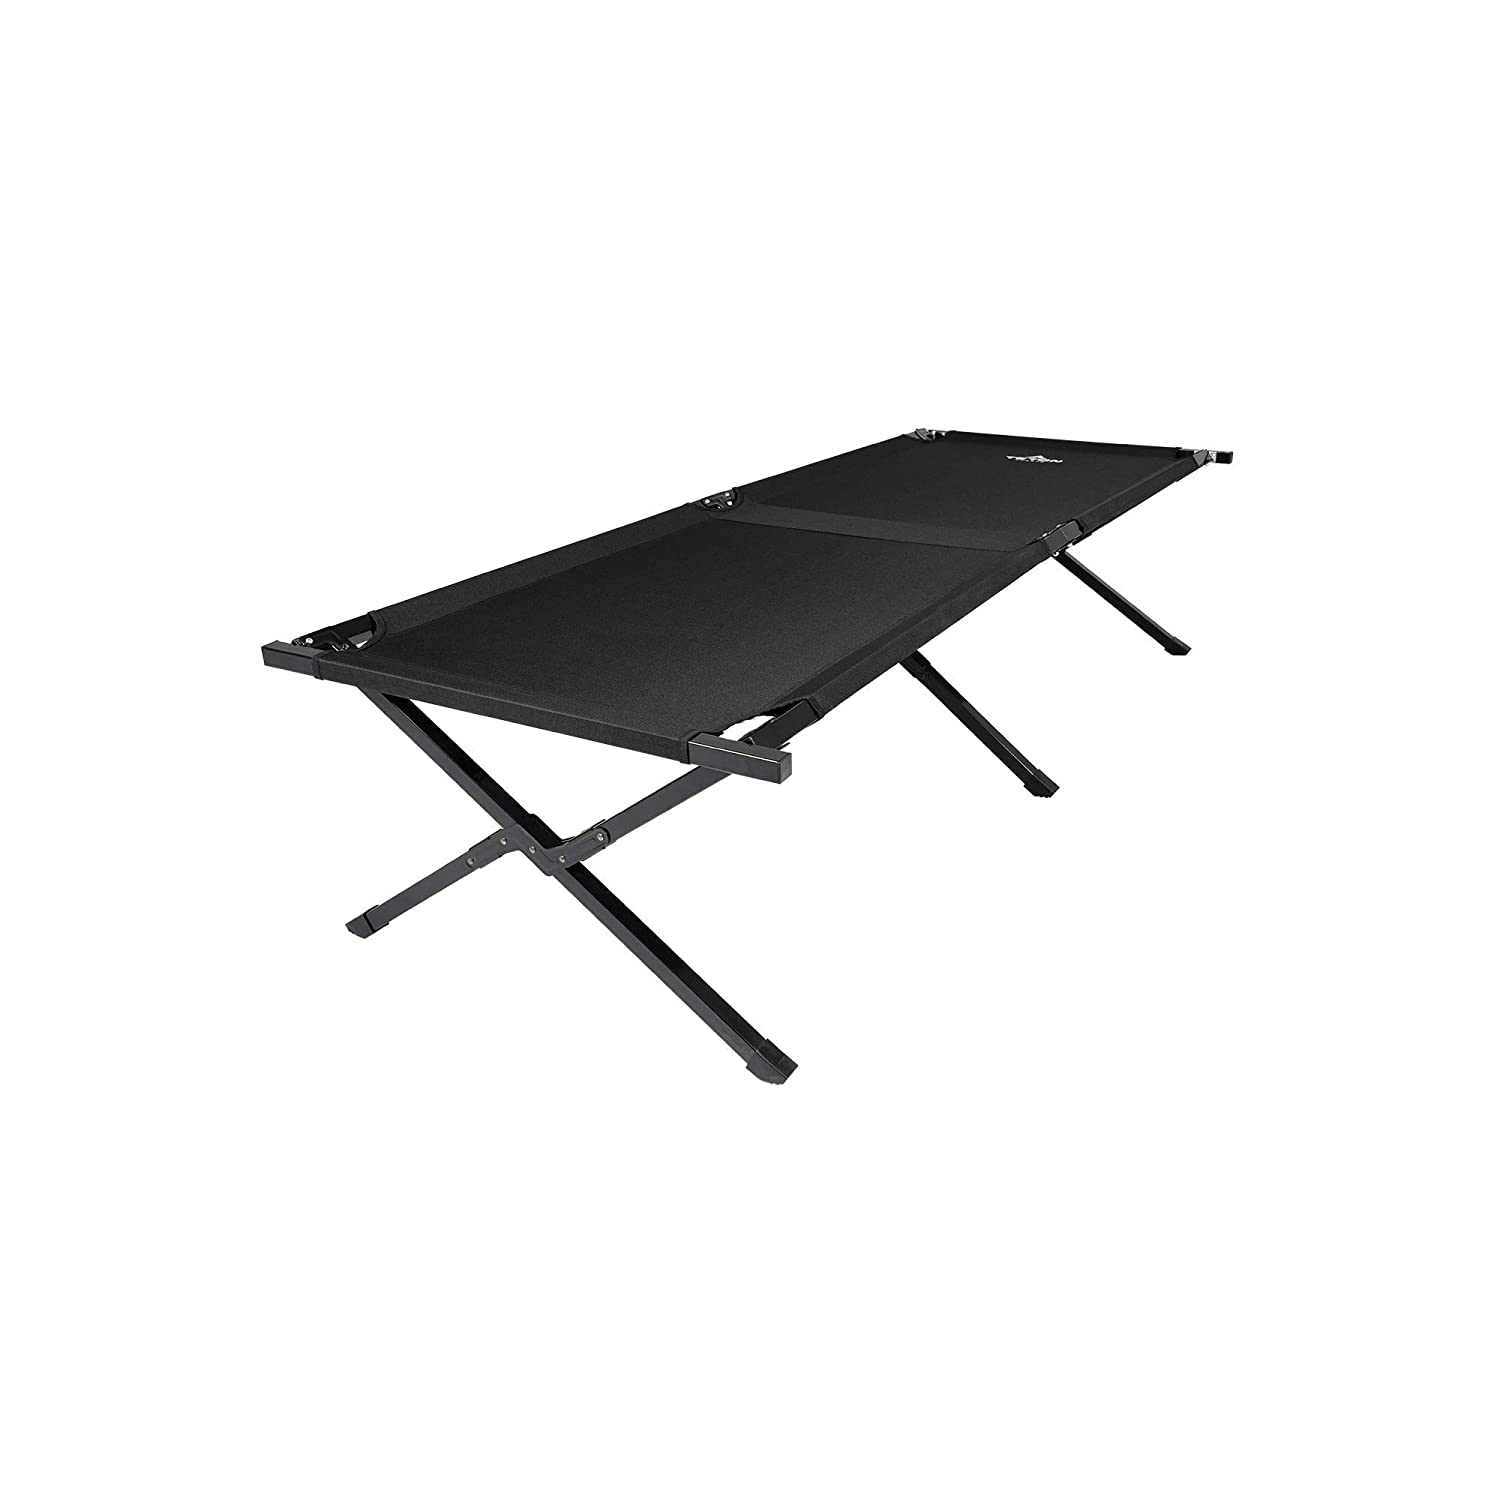 Renewed a Cot that Brings the Comfort of Home to the Campsite; Camping Cots for Adults; Easy Set Up; Storage Bag Included TETON Sports Camp Cot; Finally